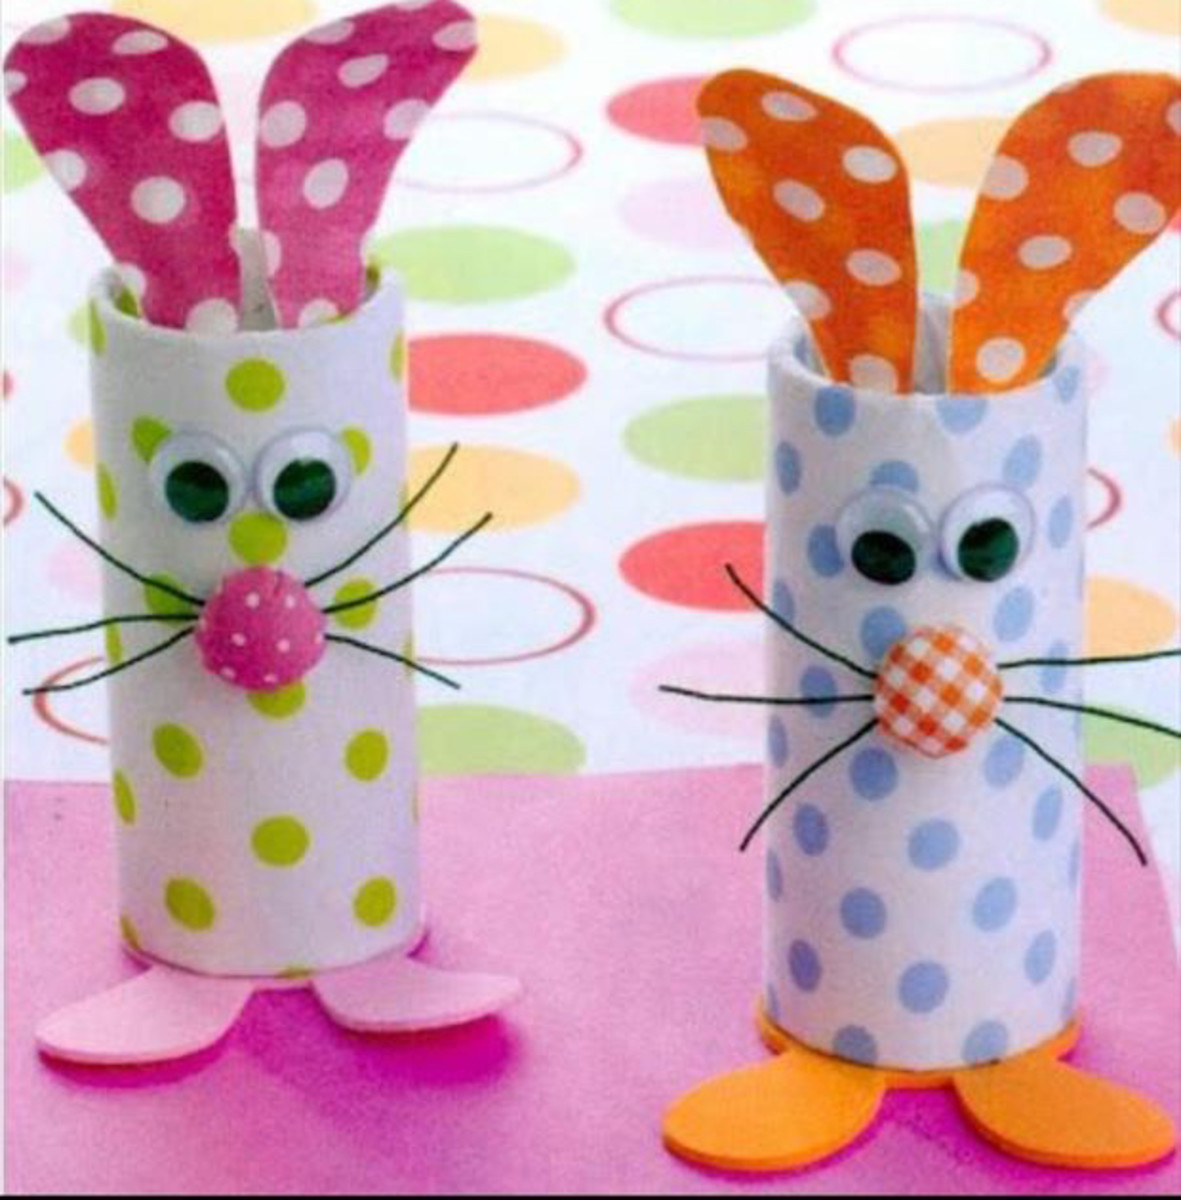 These pretty little Easter Bunnies were made with craft rolls, dotted tissue paper and foam.  Aren't they cute as can be?  I love craft rolls when I am making craft projects with my kids.